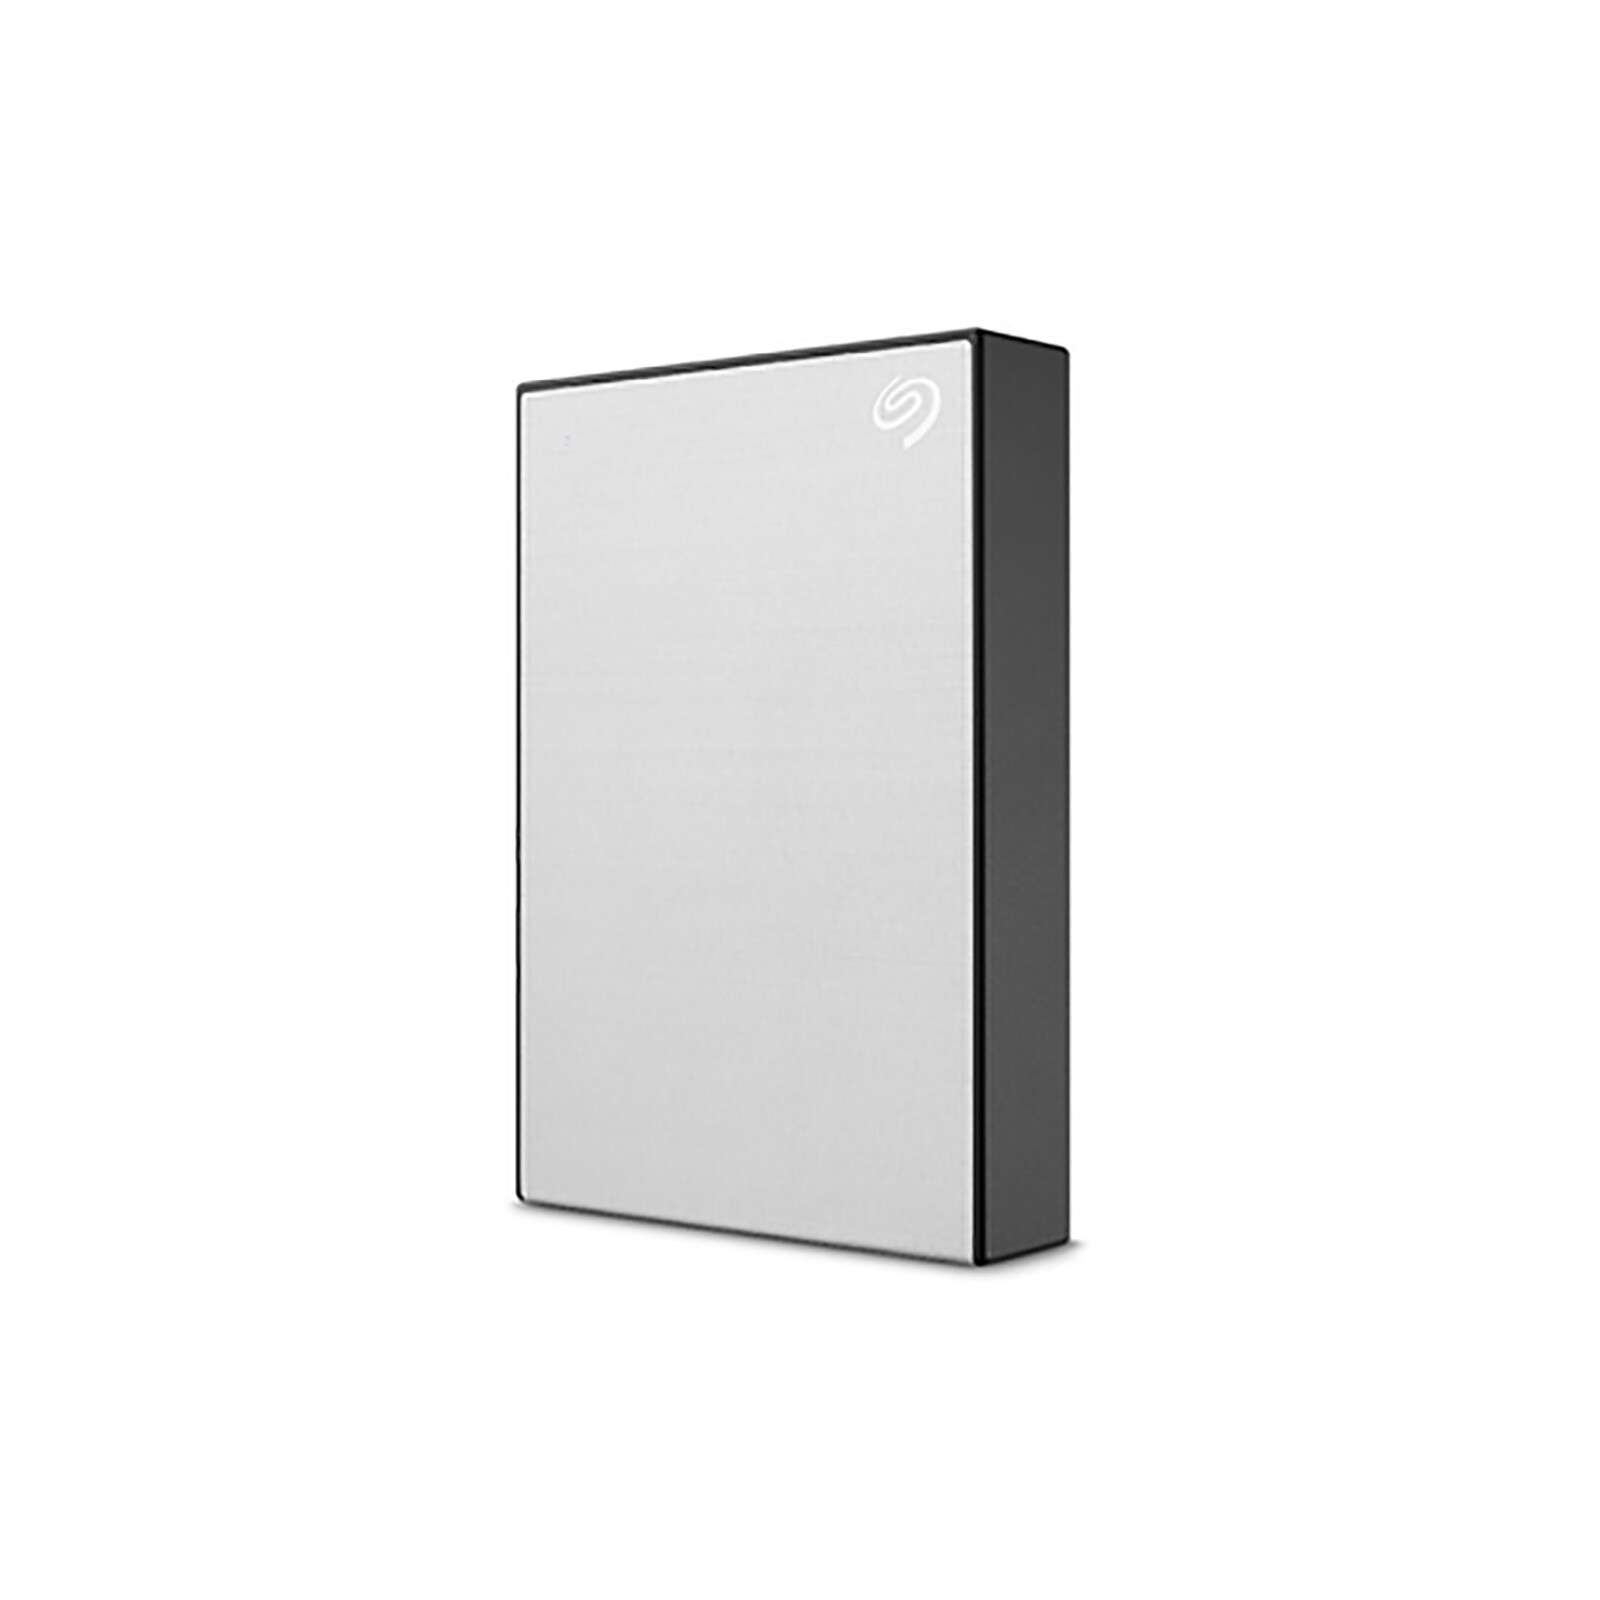 Seagate One Touch 1TB USB 3 silver